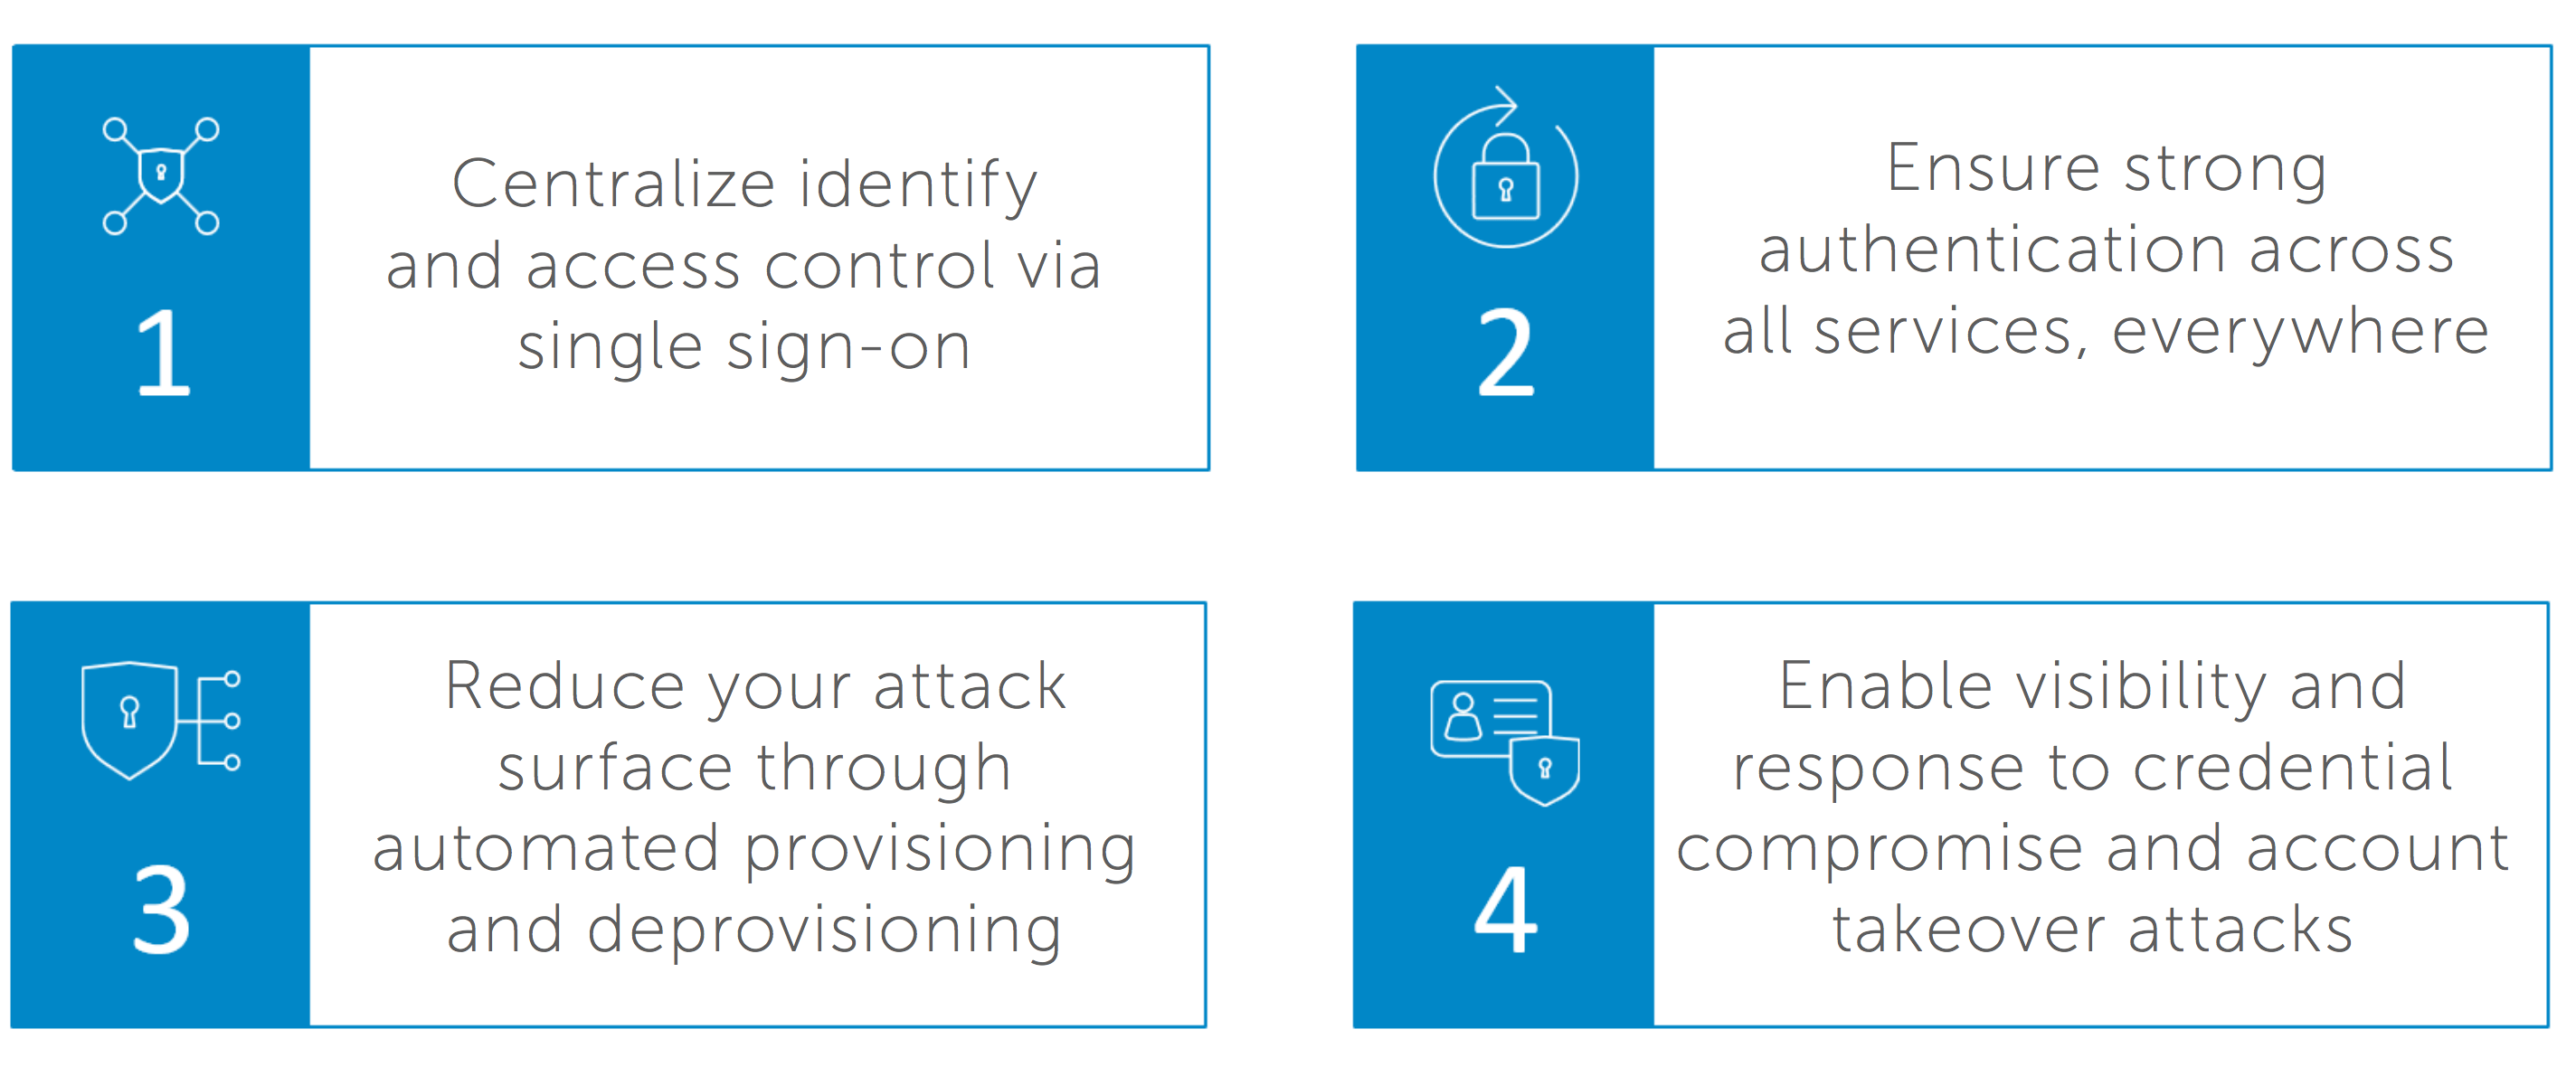 Okta centralizes identity by ensuring a strong authentication and ultimately reduces you attack and enables your organization to have visibility.